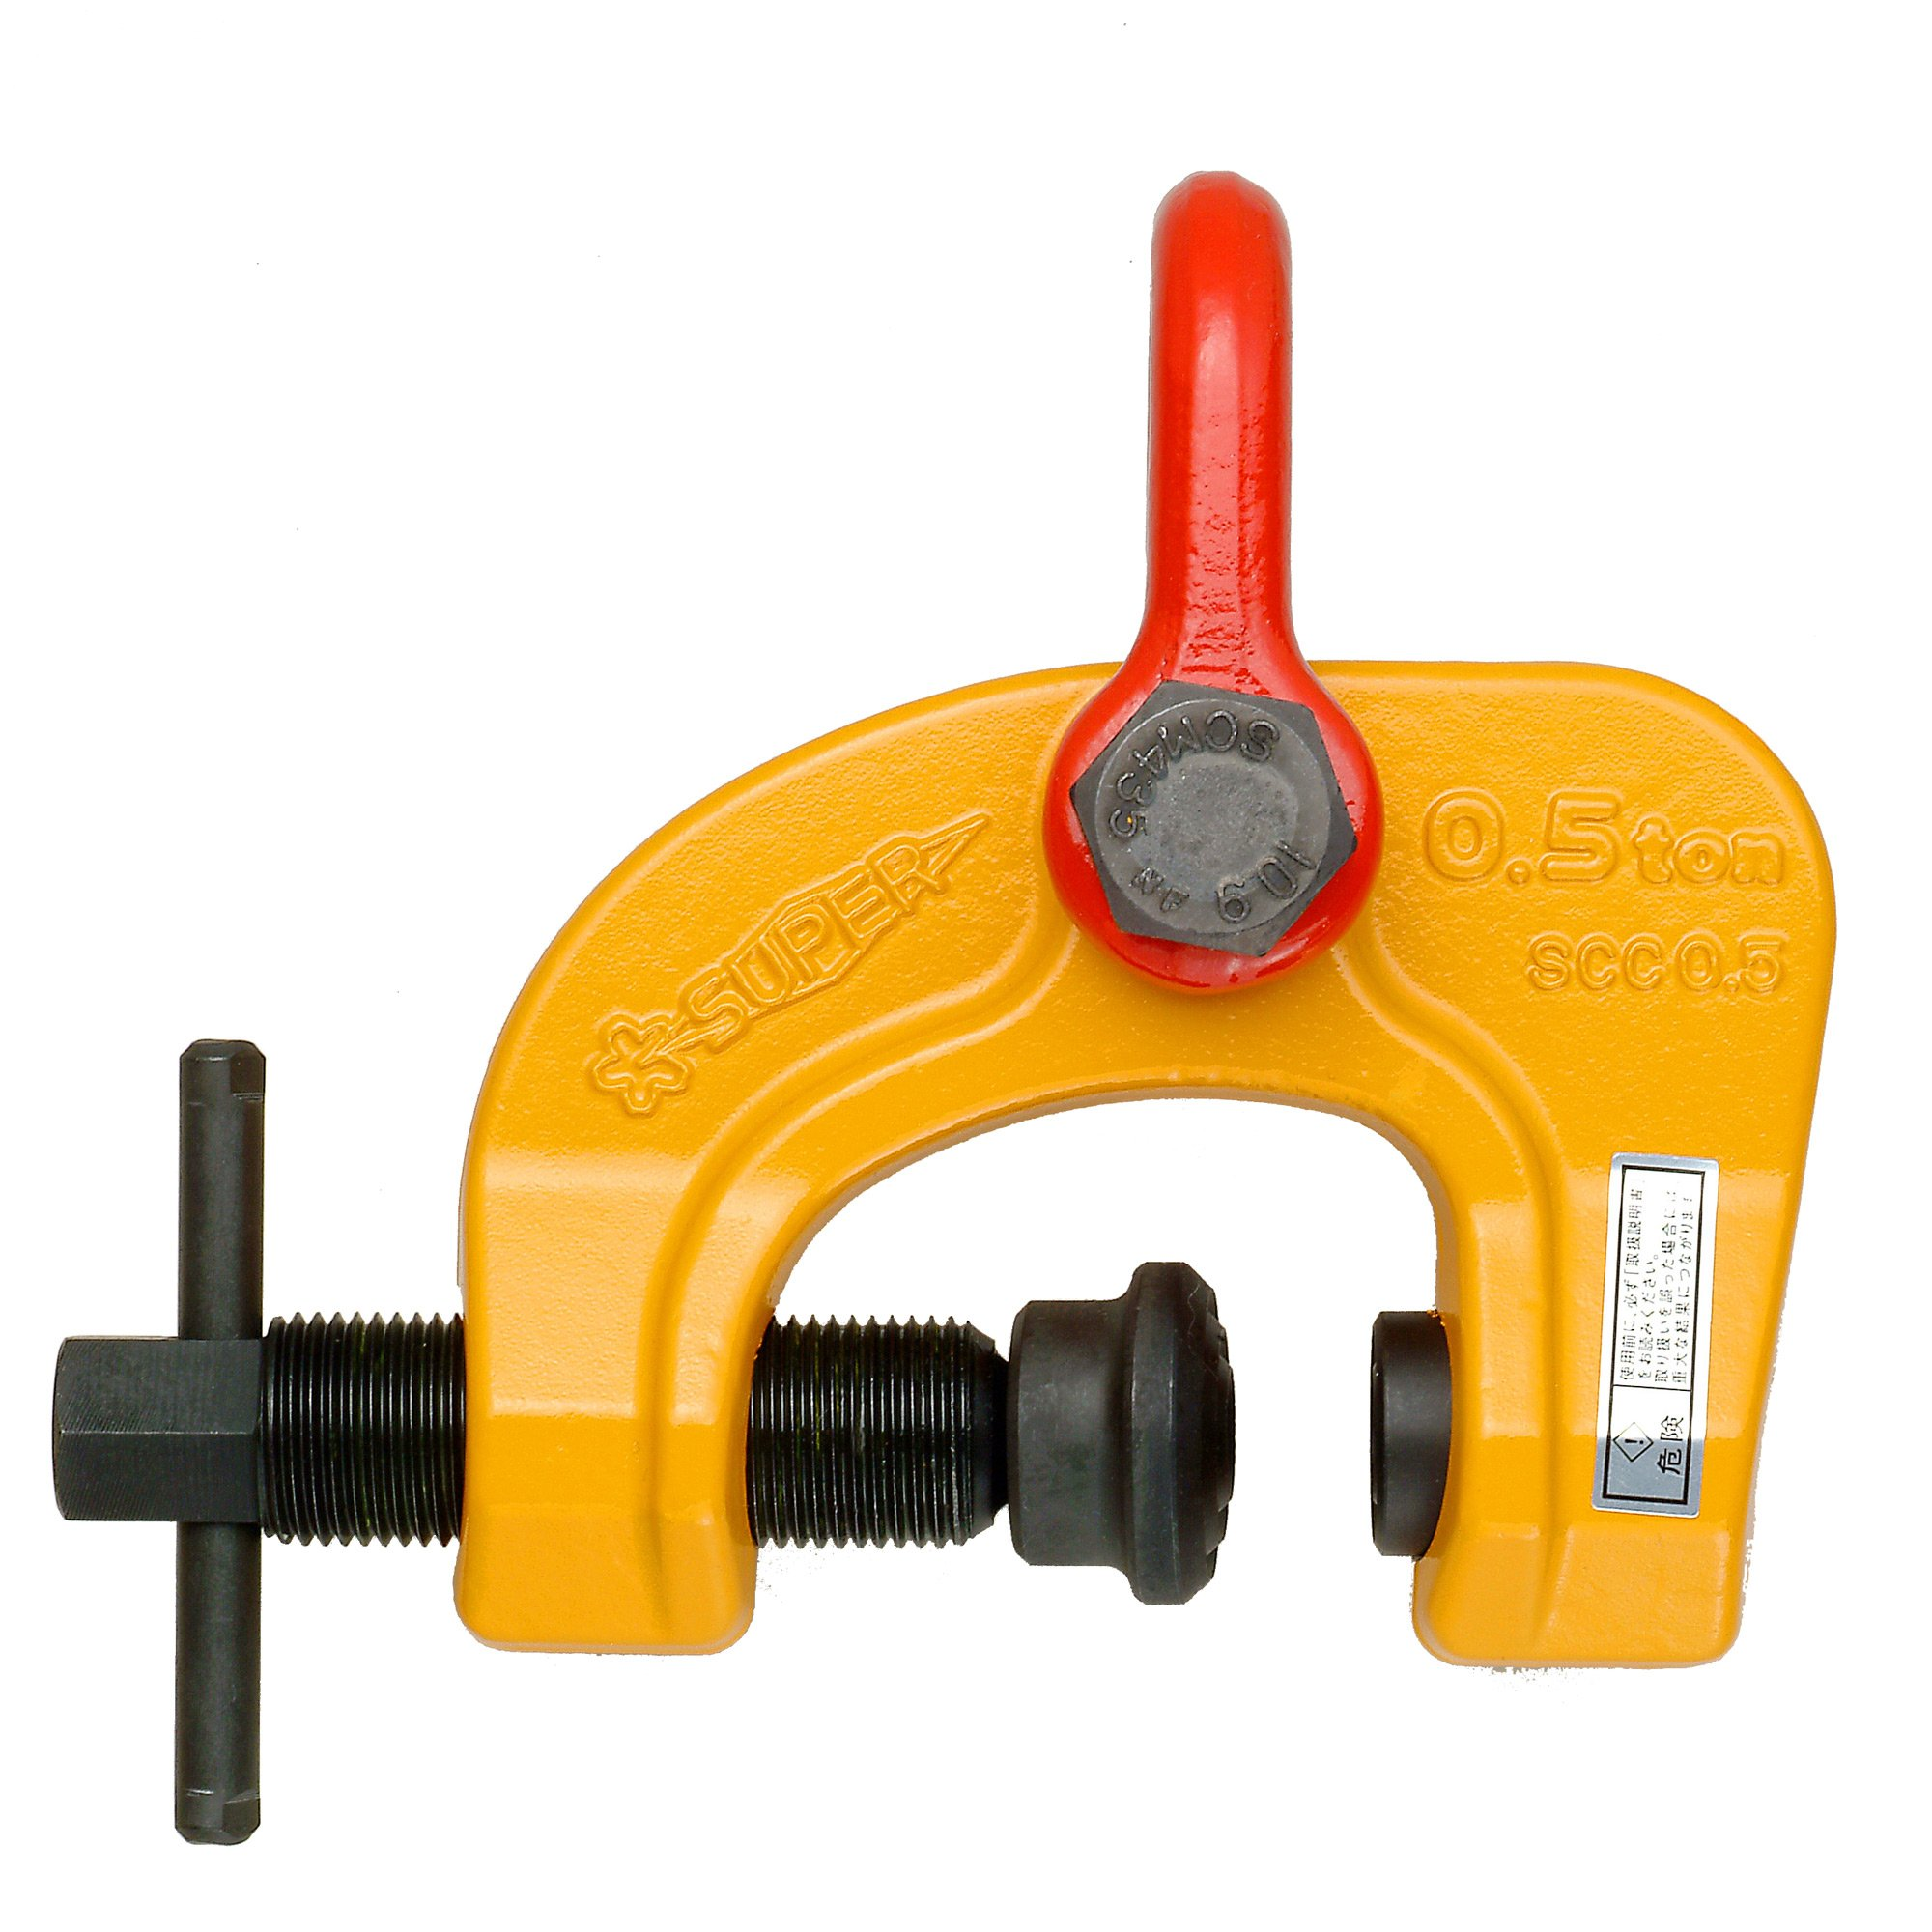 Supertool Screw adjusted Cam Clamp SAC/ SCC1.5 (1.5 TON) by Super Tool